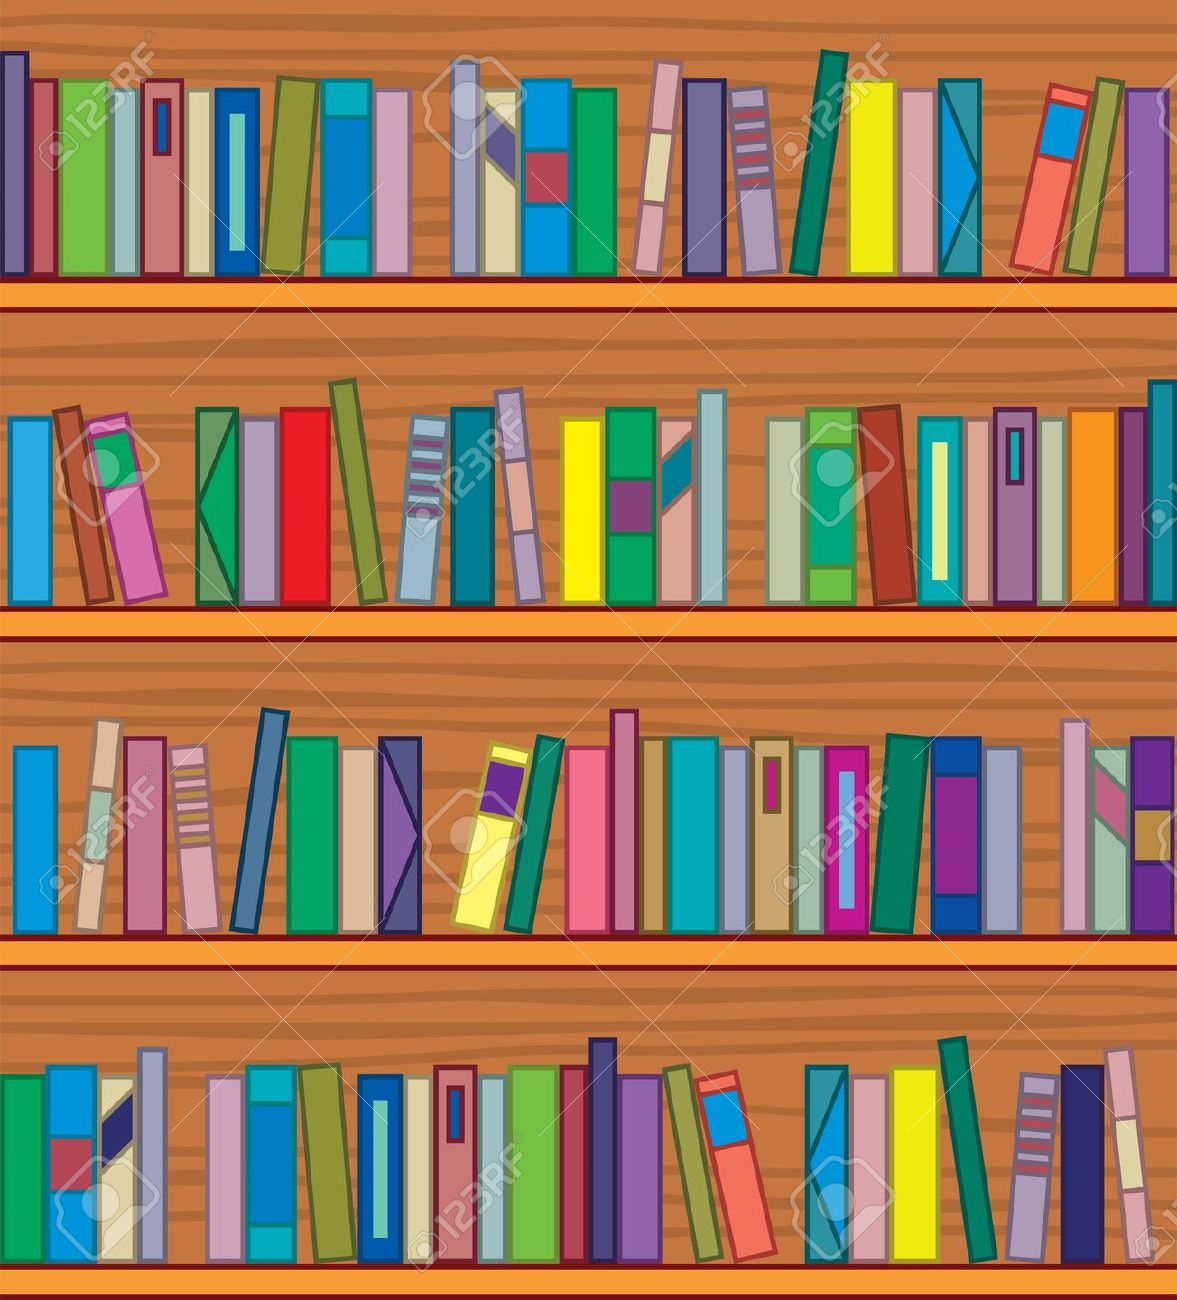 Background clipart library. Of books in a